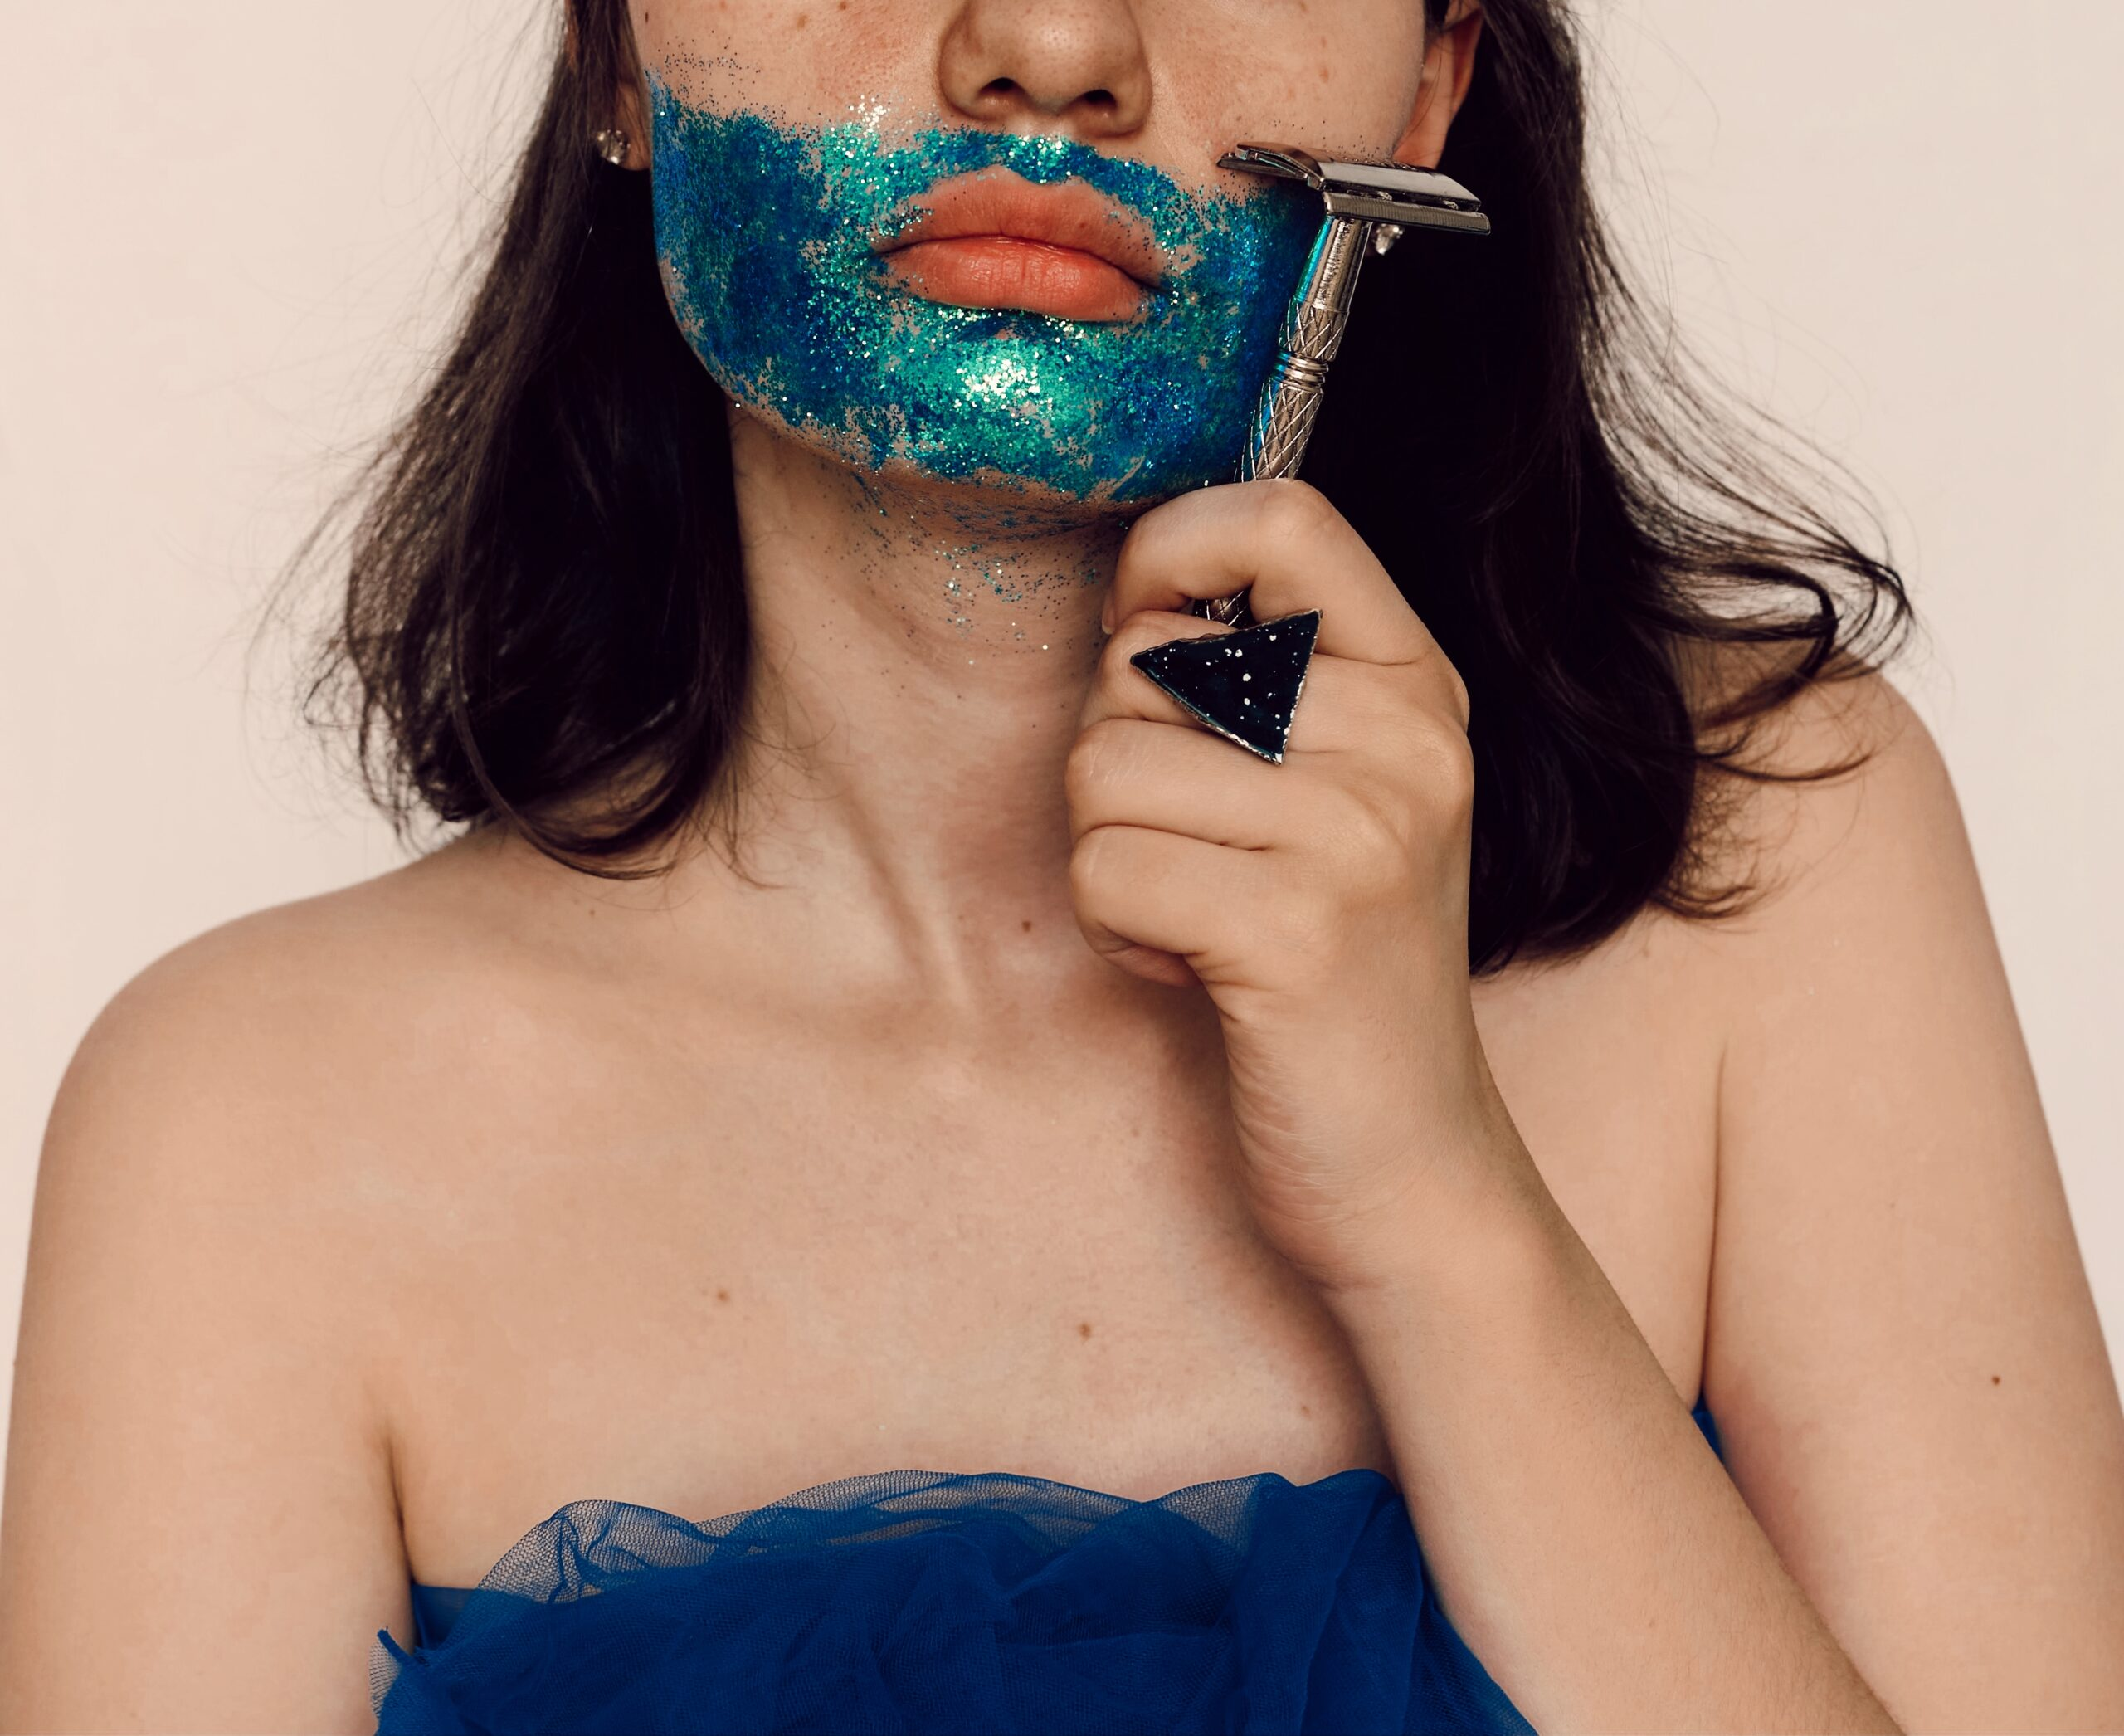 The Dichotomy of Capitalism and Anti-Beauty: Can we have both?